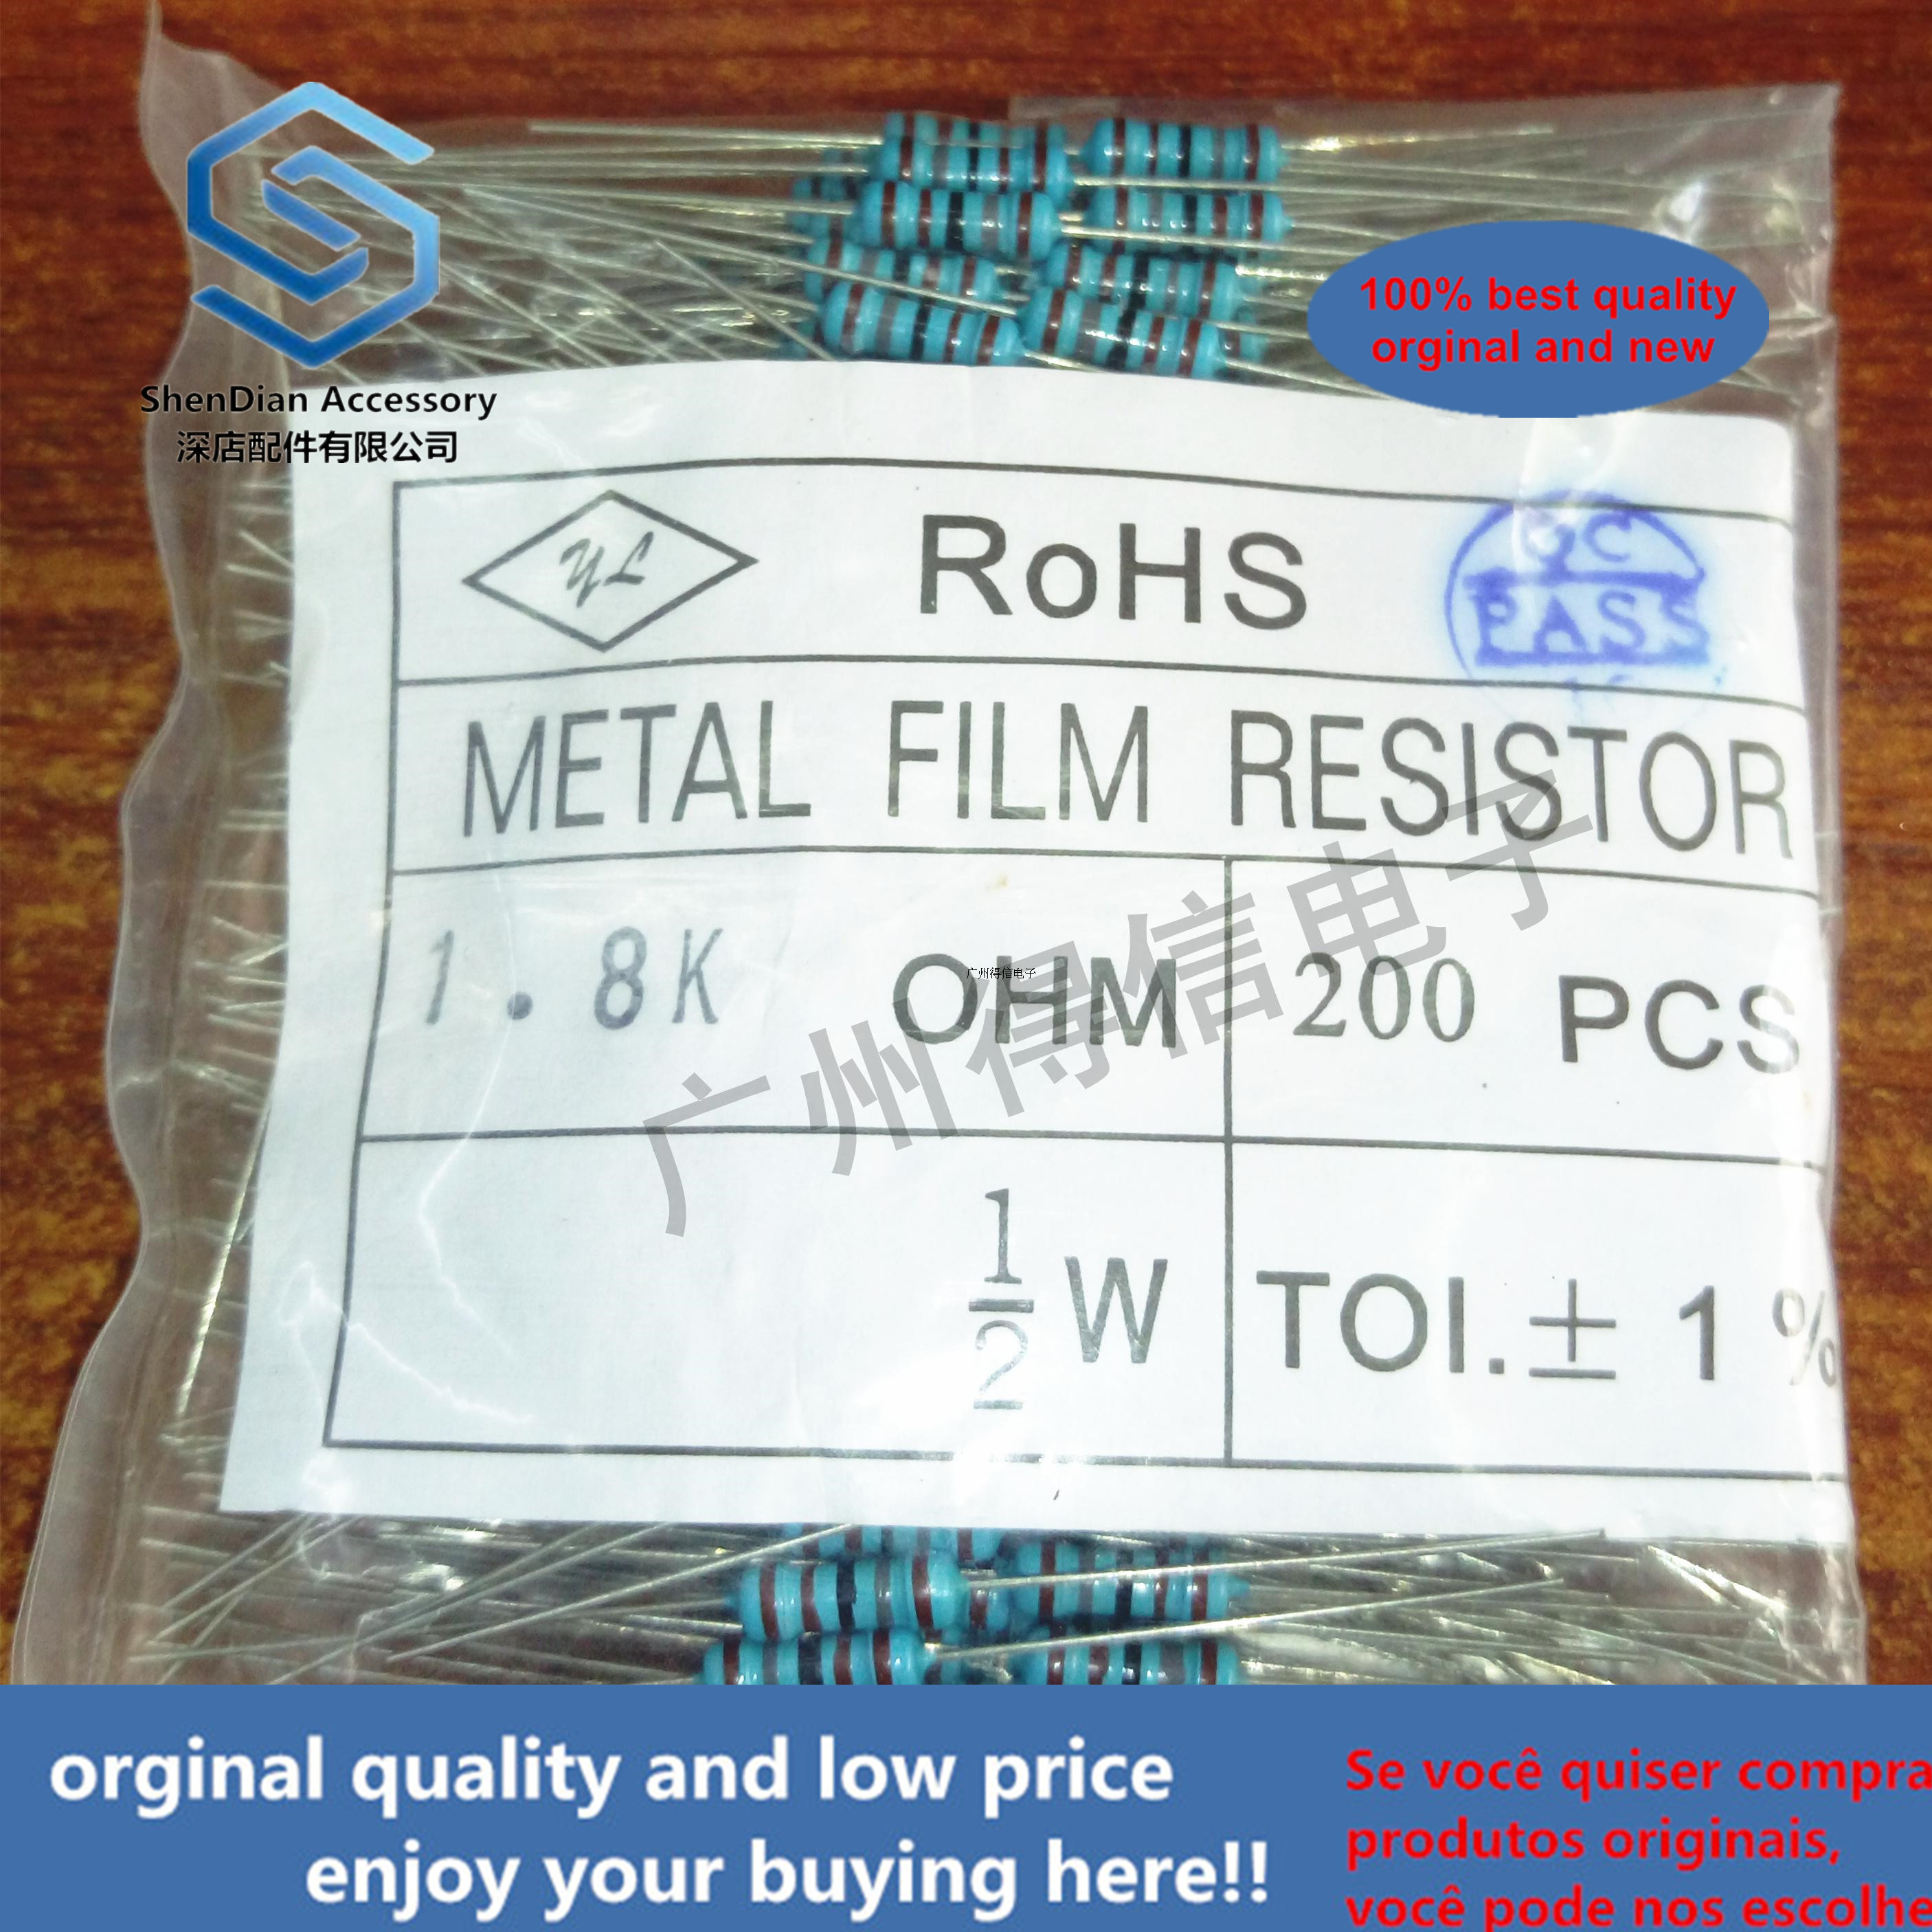 200pcs 1 / 2W 1.2K 1200 Euro 1% Brand New Metal Film Iron Feet Resistor Bag 200 Pcs Per Pack